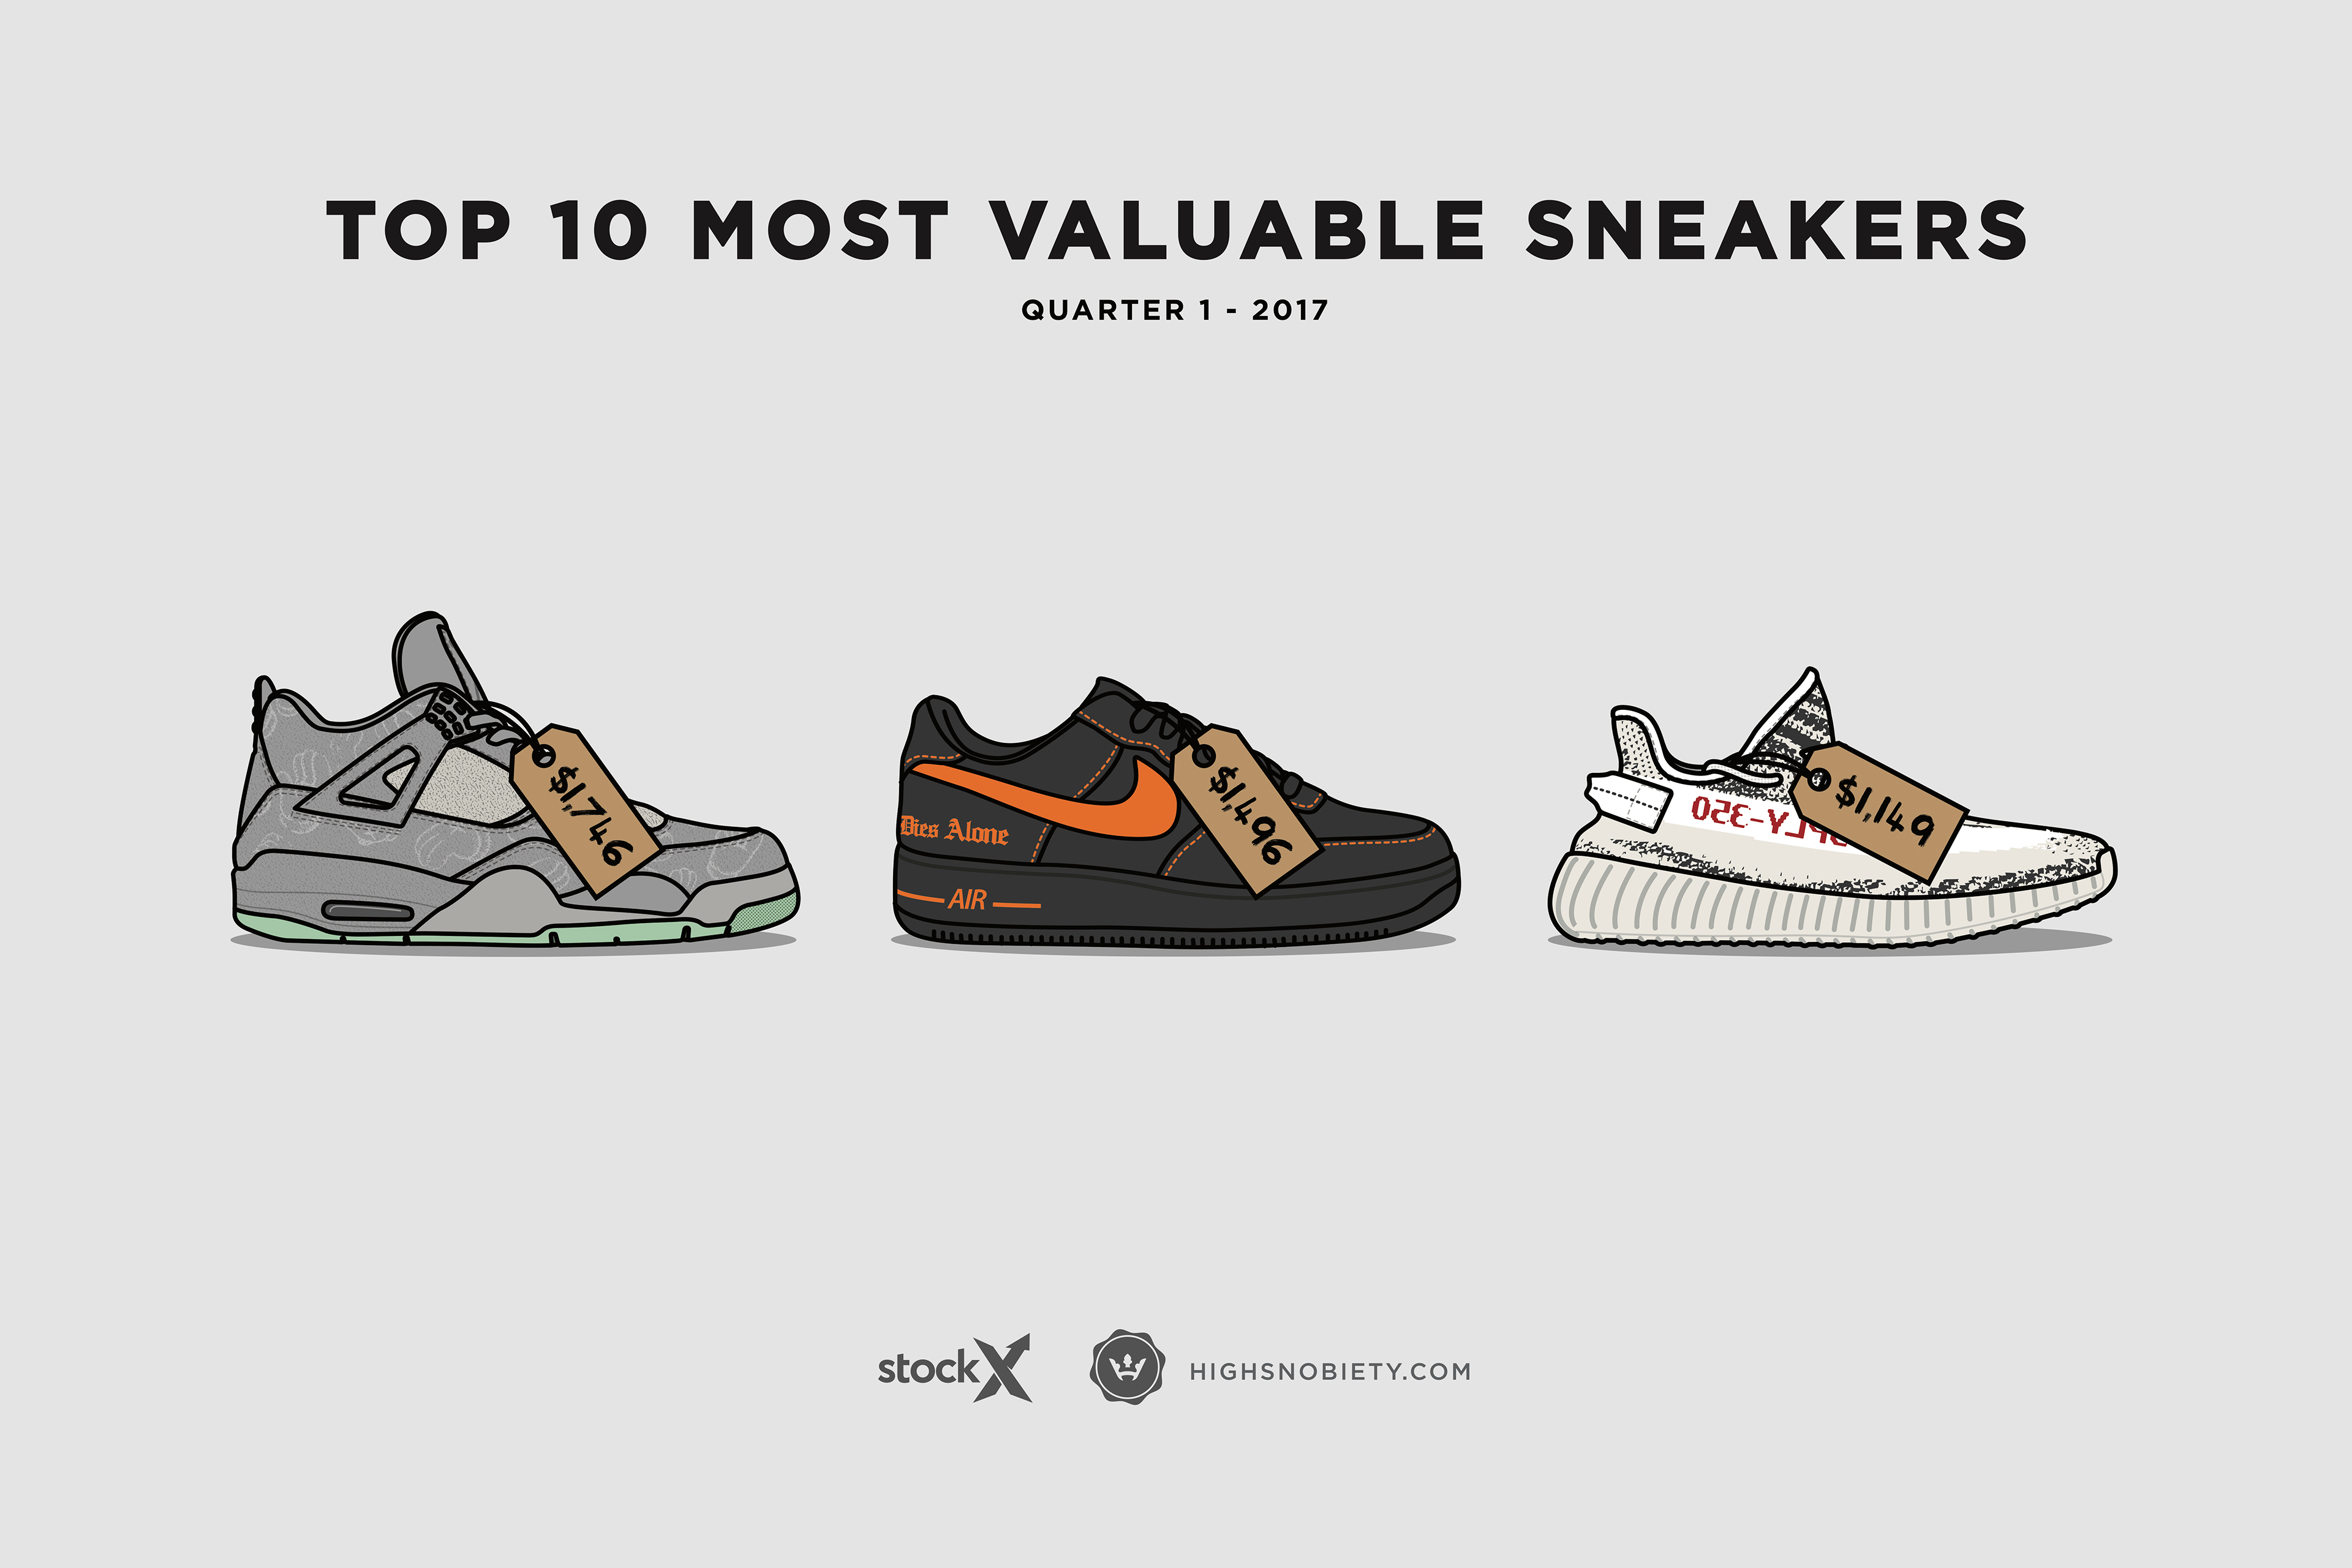 cac1b370a5cef Most Valuable Sneakers